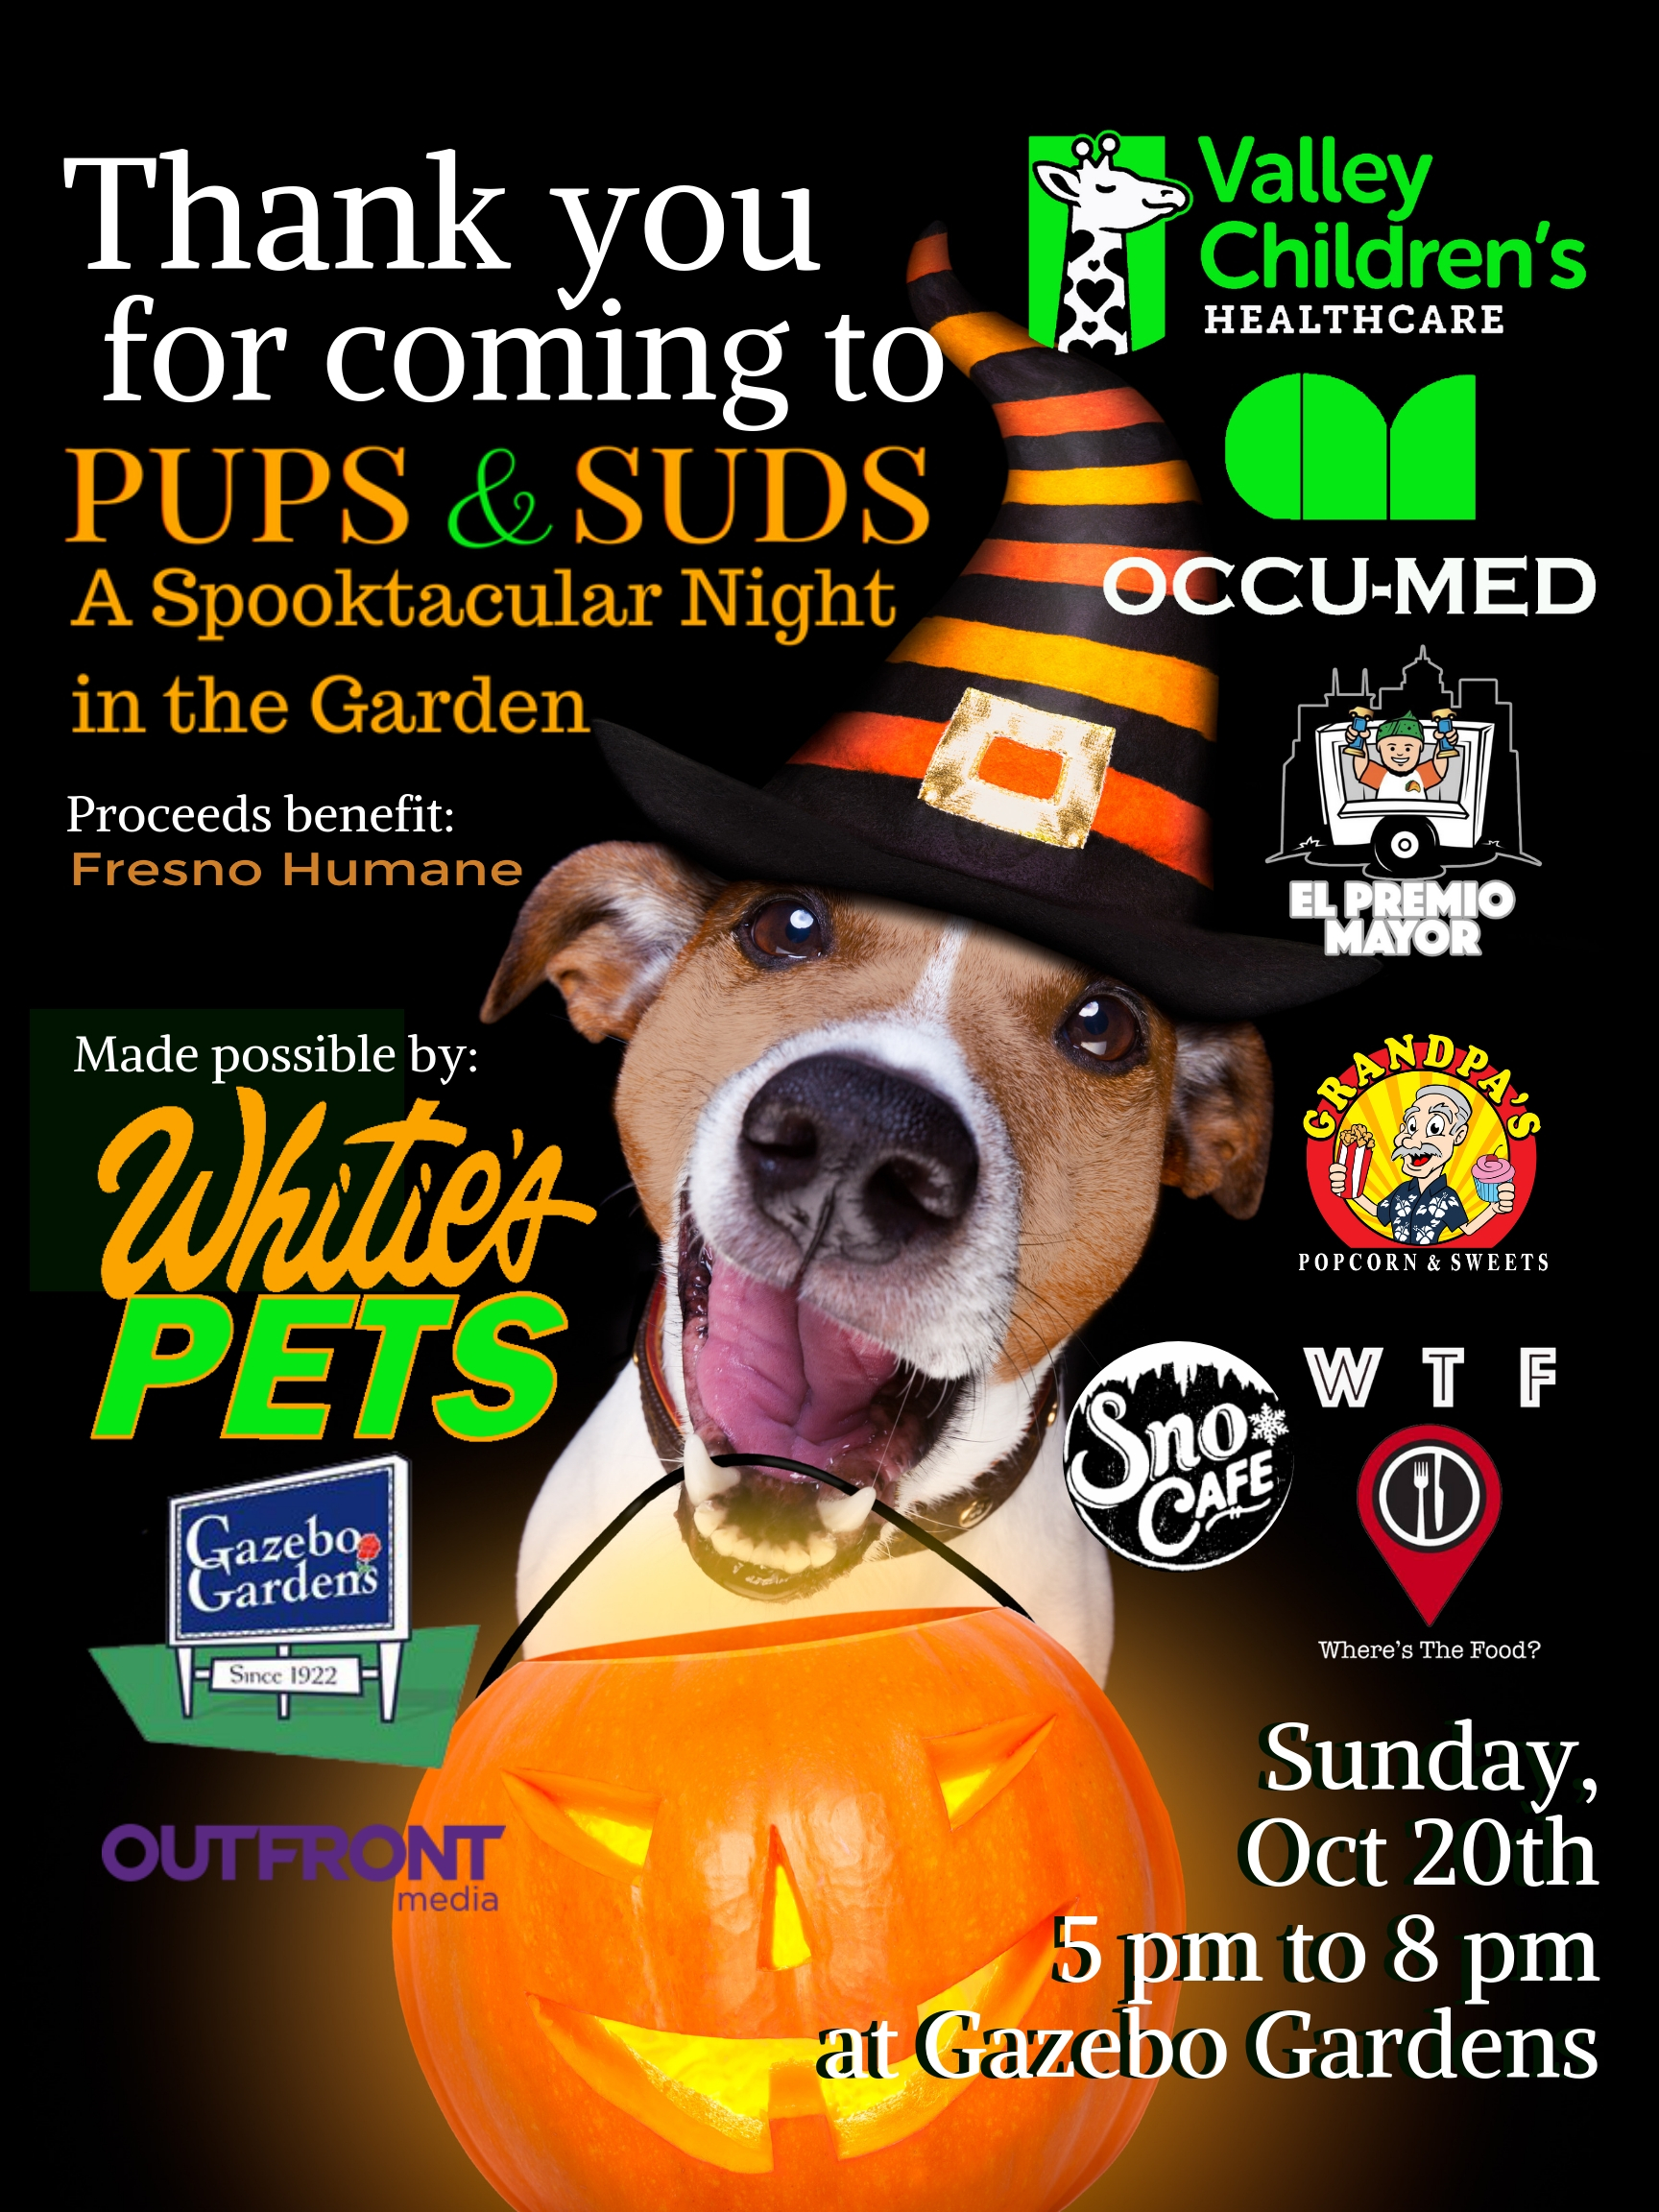 DOGS IN COSTUME + BEER + FOOD TRUCKS + MUSIC + FRIENDS + RAFFLE PRIZES = PUPS & SUDS!  PUPS & SUDS has all the ingredients of a fun-tastic time with your best doggy pal! Make insta-memories with Fresno Humane all for a great cause!!! All proceeds benefit the medical fund helping lost, injured pets get access to life-saving surgeries and medicines. You can be a life-saver and have fun too!